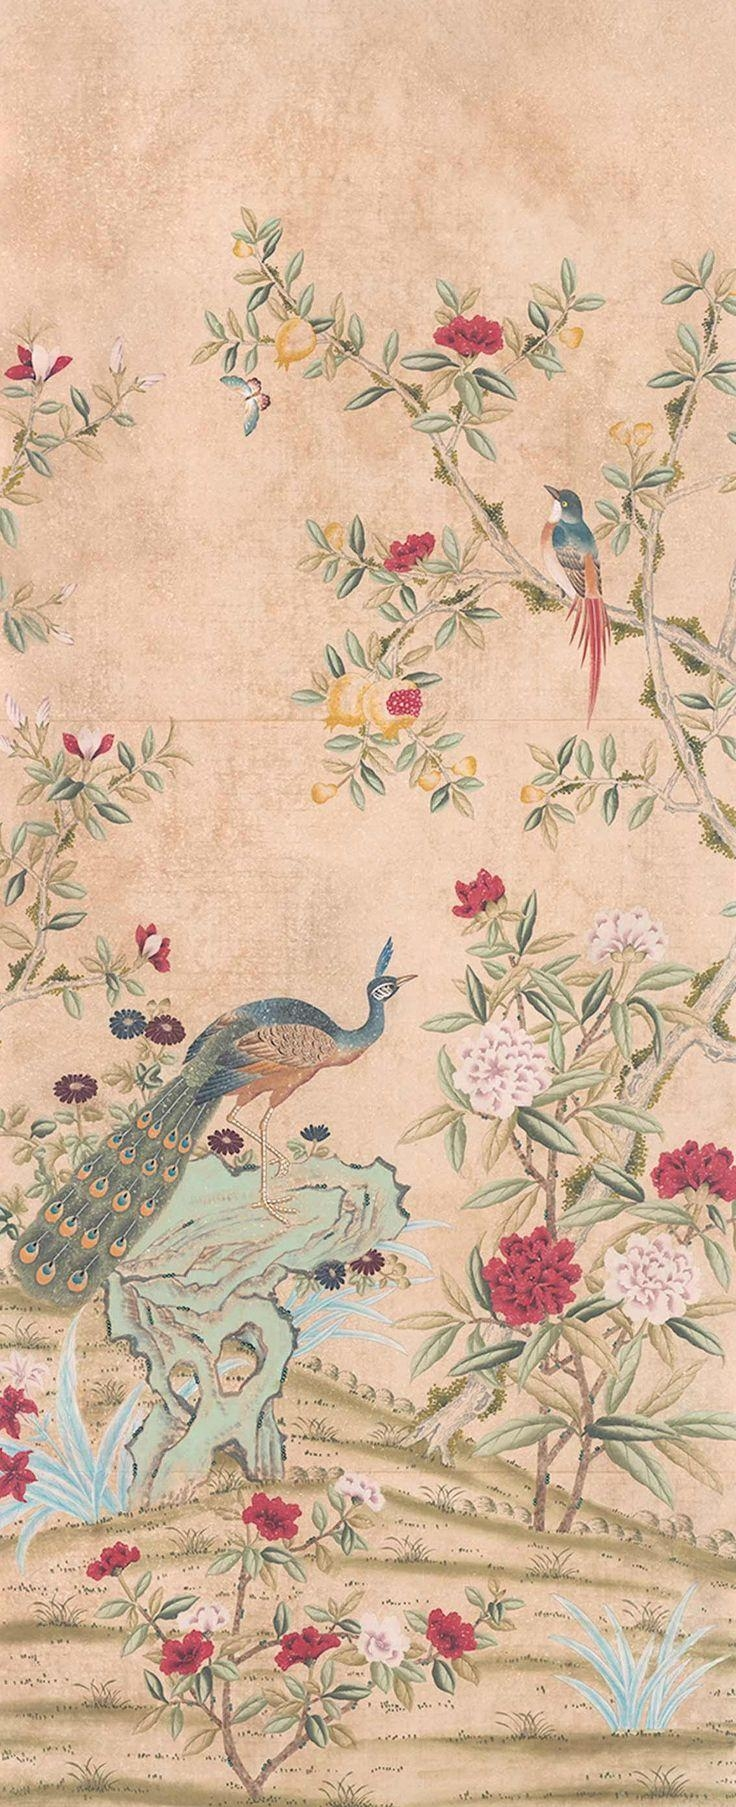 21 Best 1787 Collection Images On Pinterest | Chinoiserie, Hand In Chinoiserie Wall Art (Image 2 of 20)